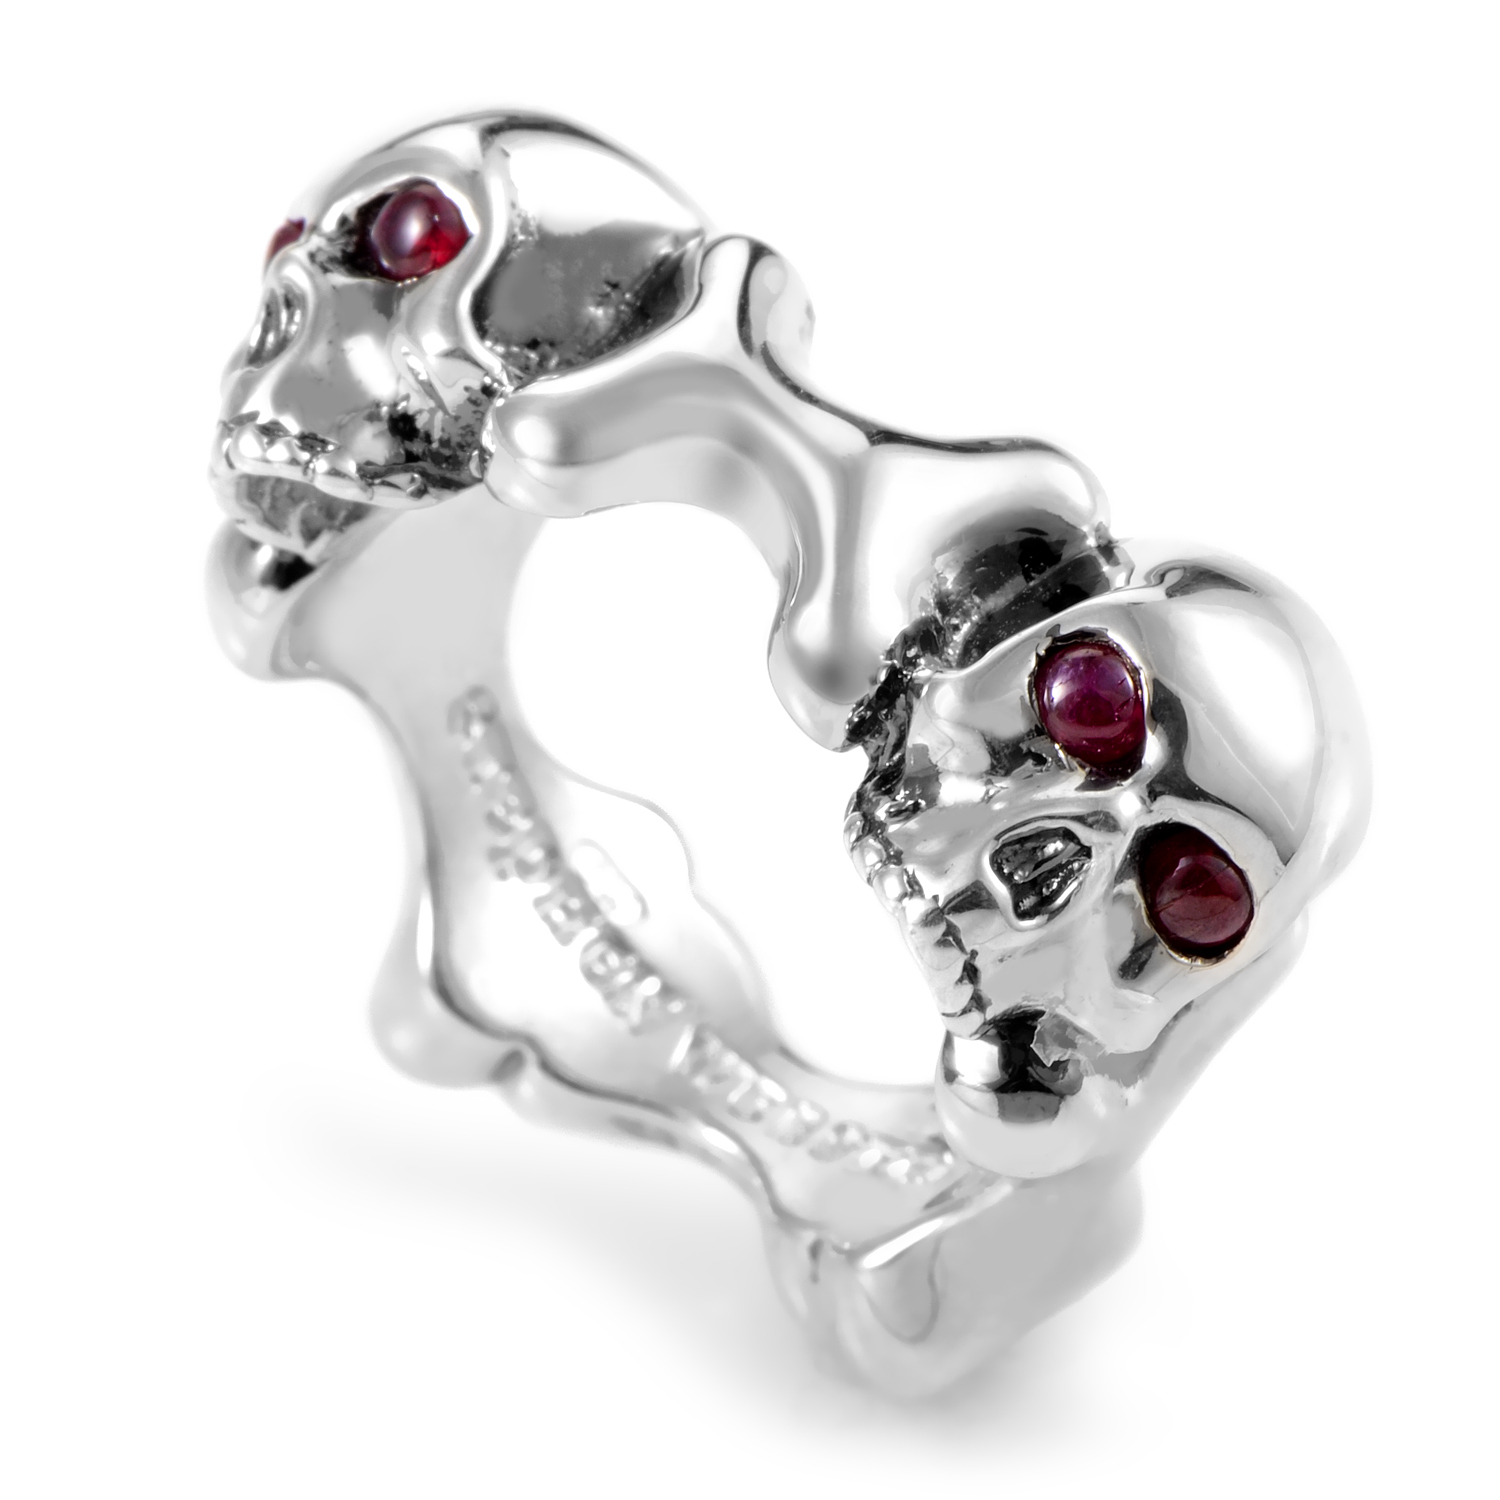 Skull and Bones Sterling Silver and Ruby Band Ring